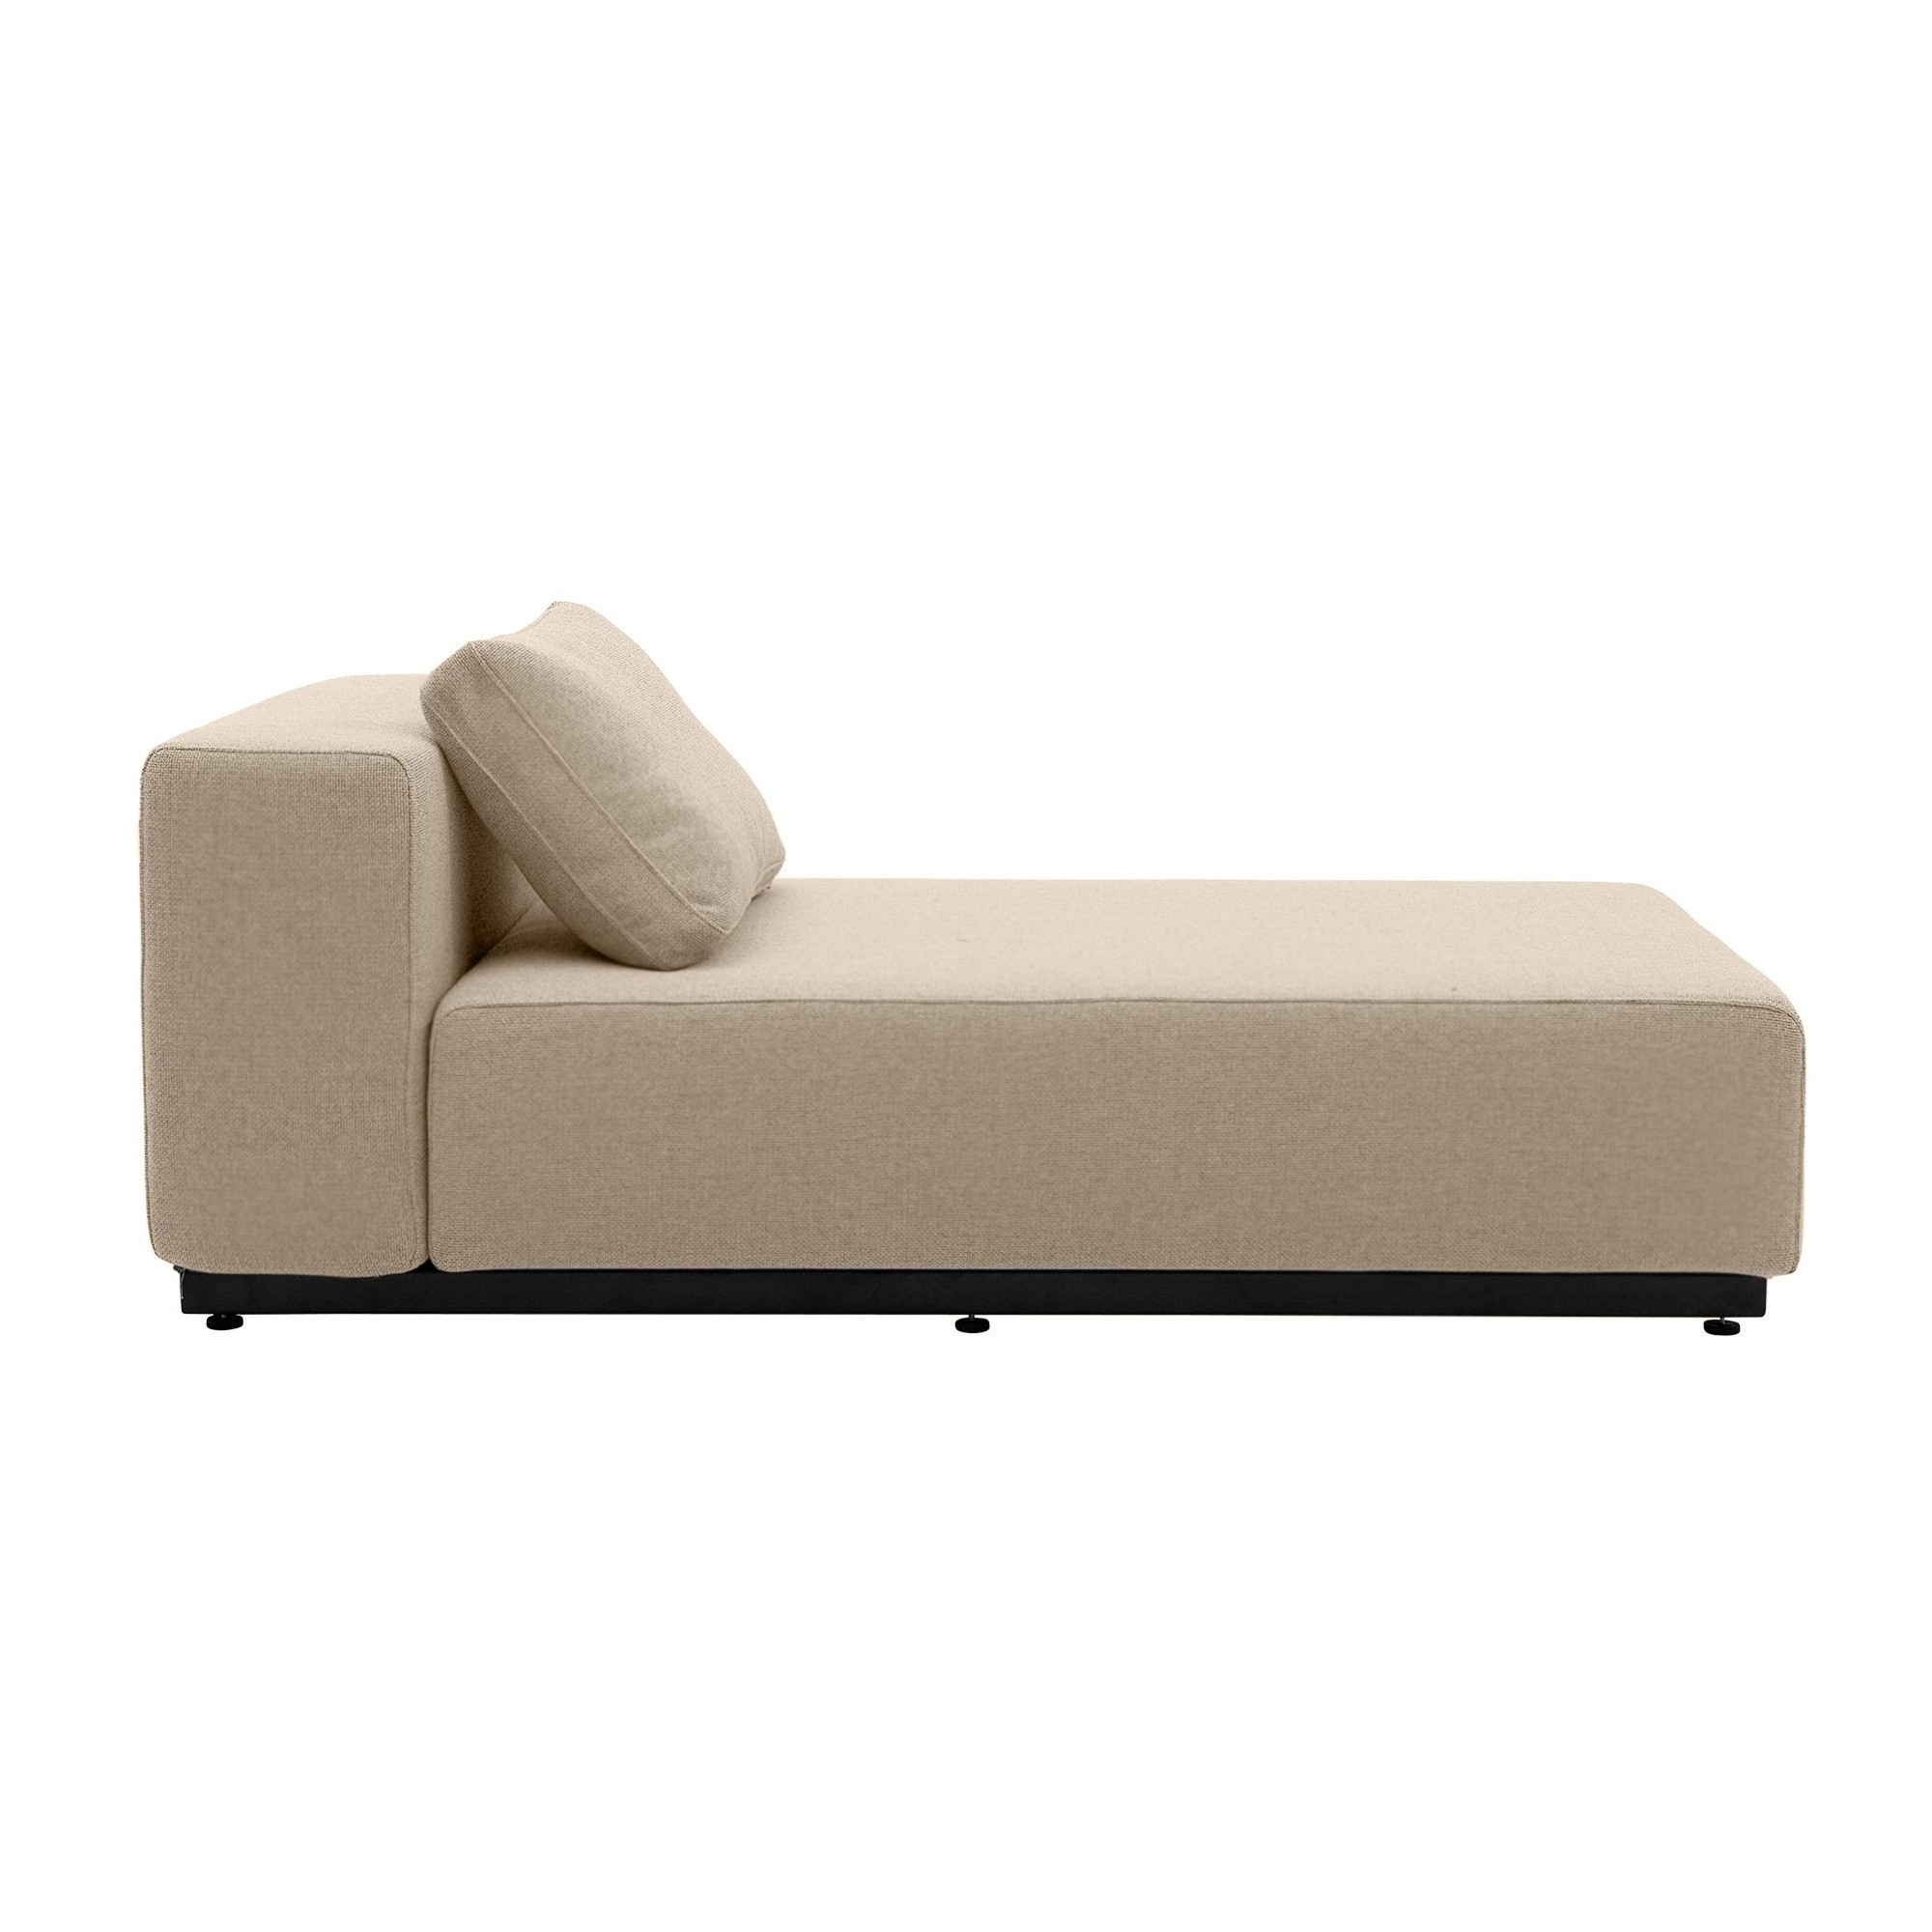 Chause Longue Nevada Chaiselongue